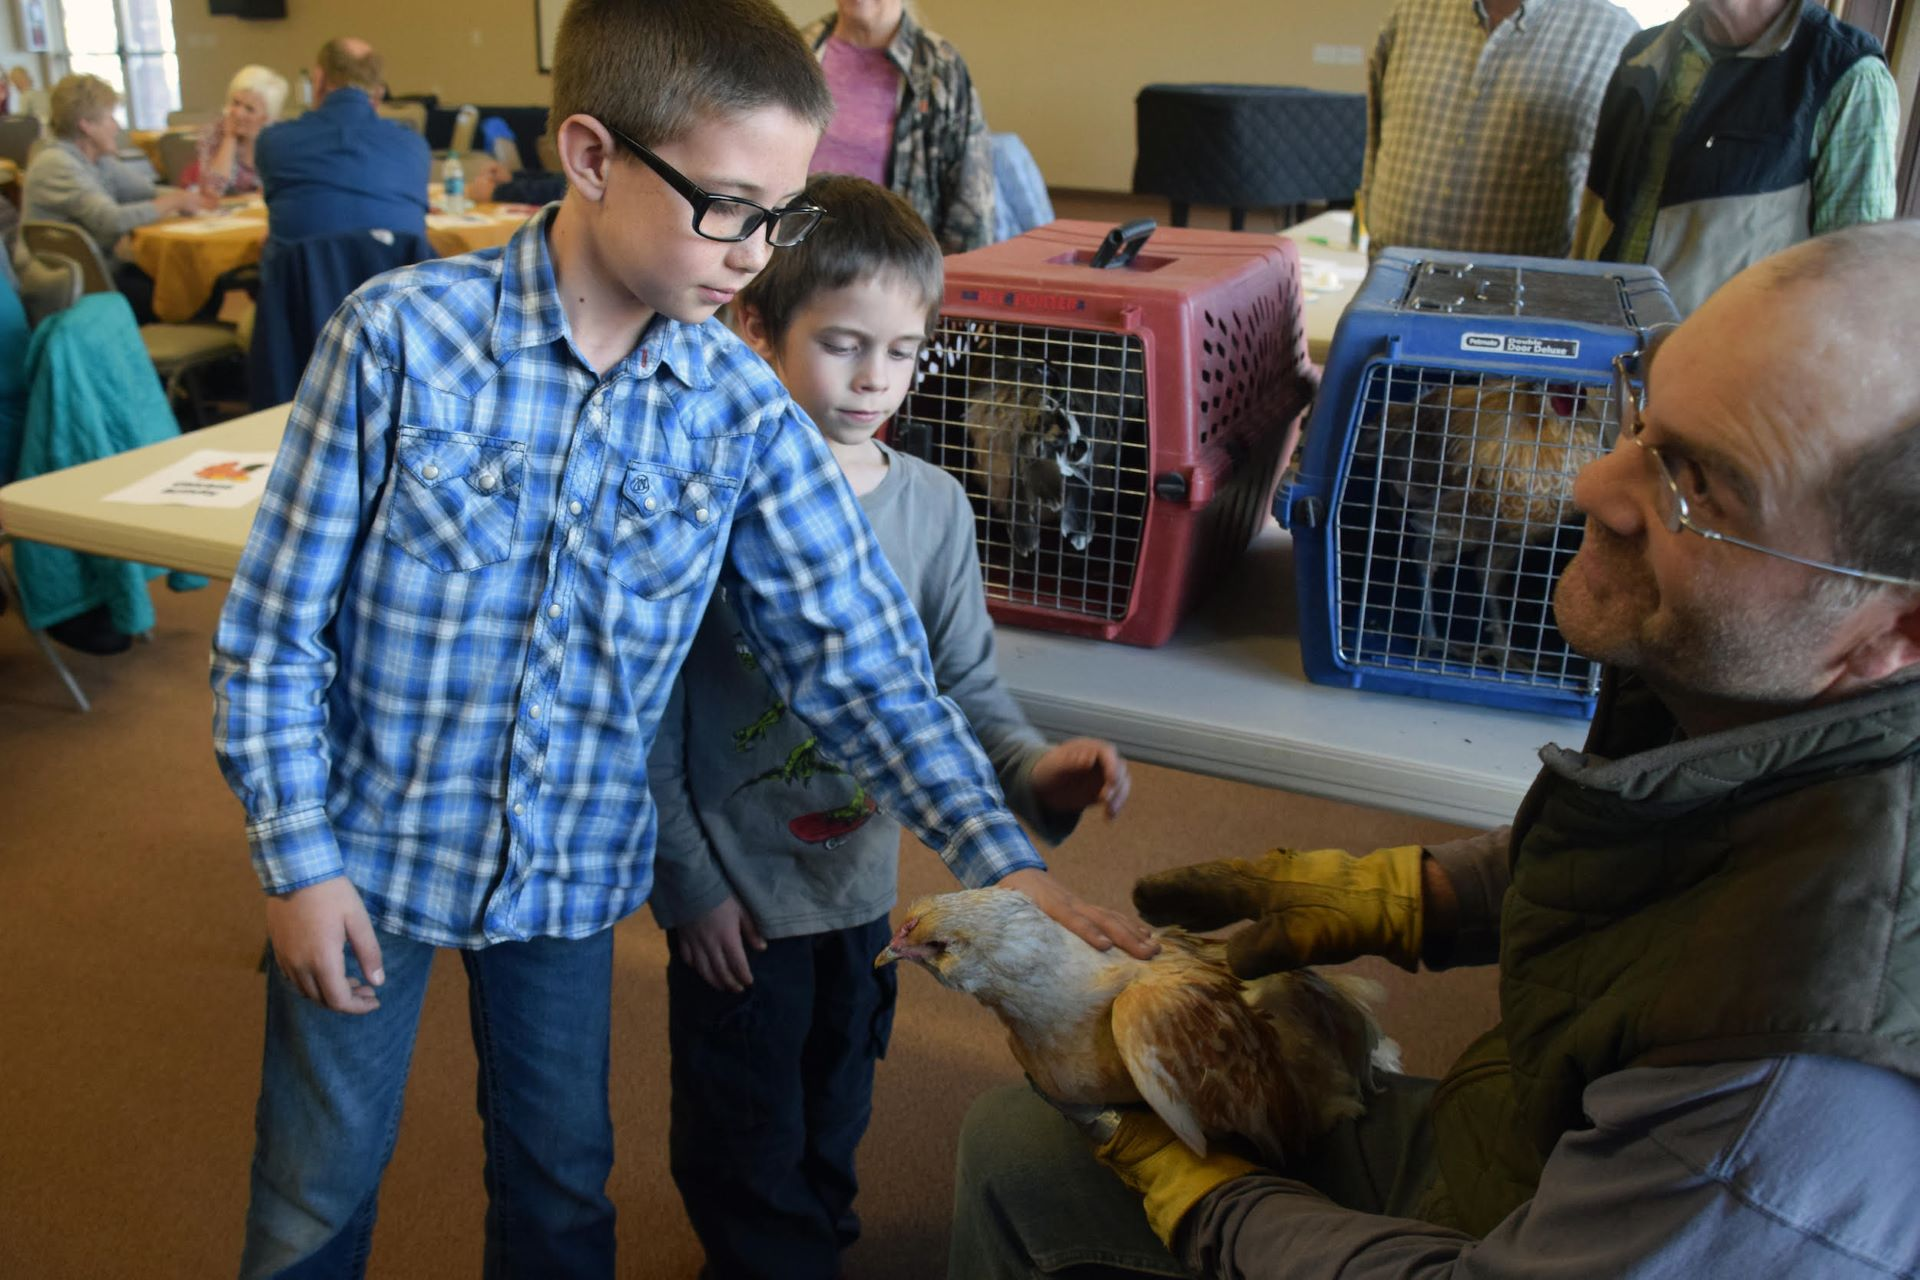 """Families attending the community dinner exploring """"Our Heritage of Chickens"""" learned about raising hens from a local farmer. Photo courtesy Entrada Institute, Inc."""